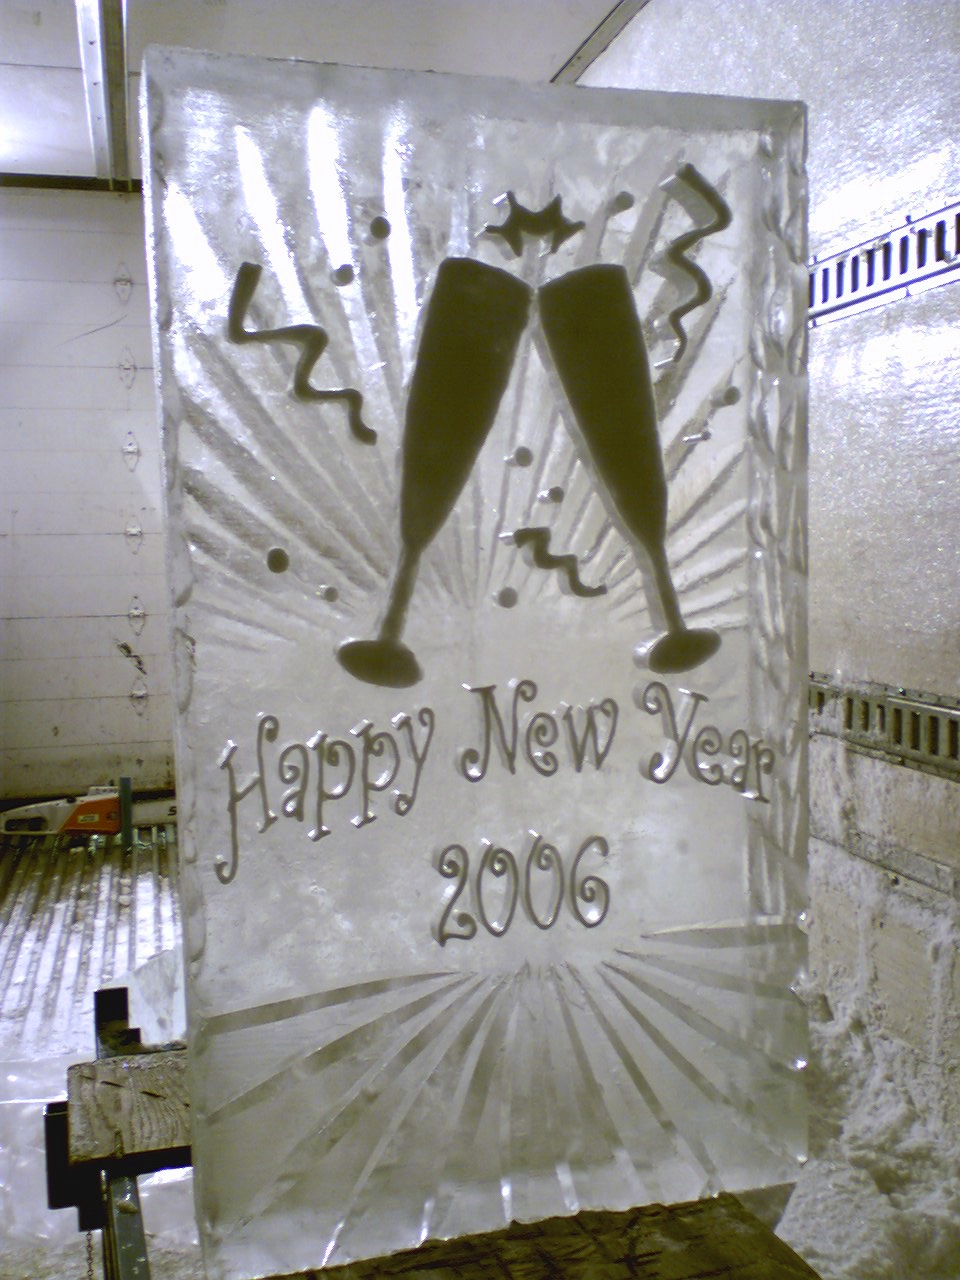 12-18-05 Ice for New Year's 13.jpg